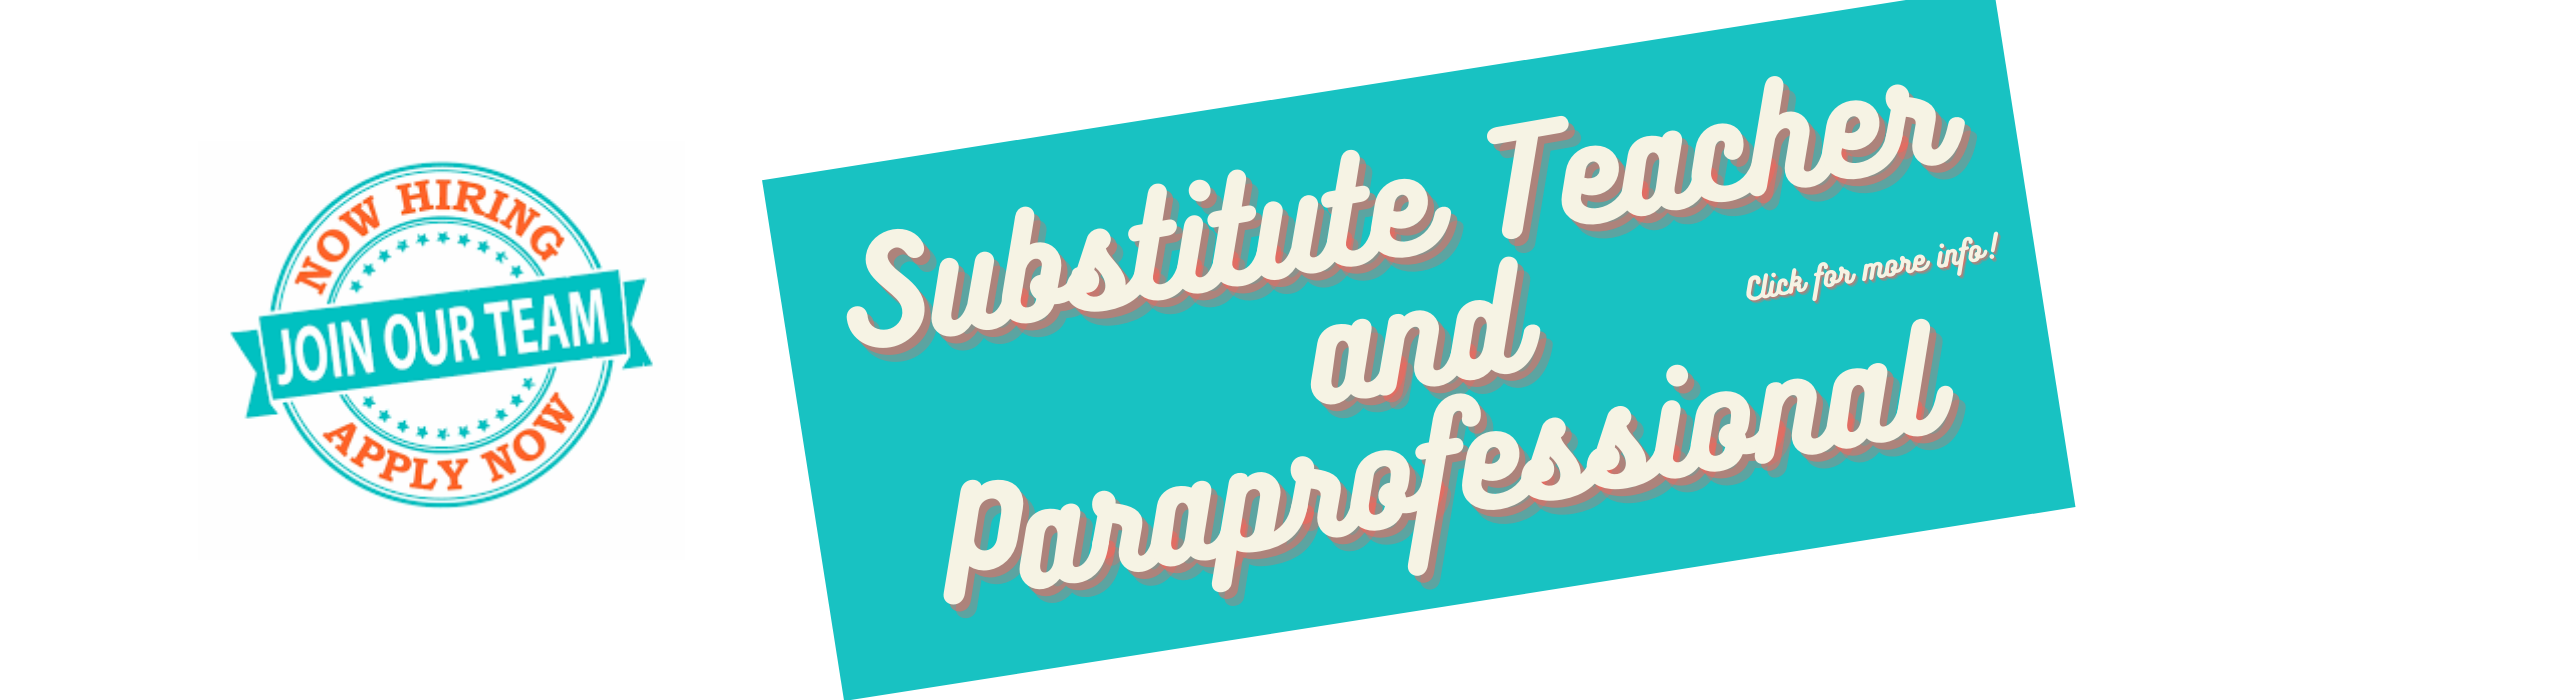 We are hiring! Substitute teacher and paraprofessional. Click Here for more info